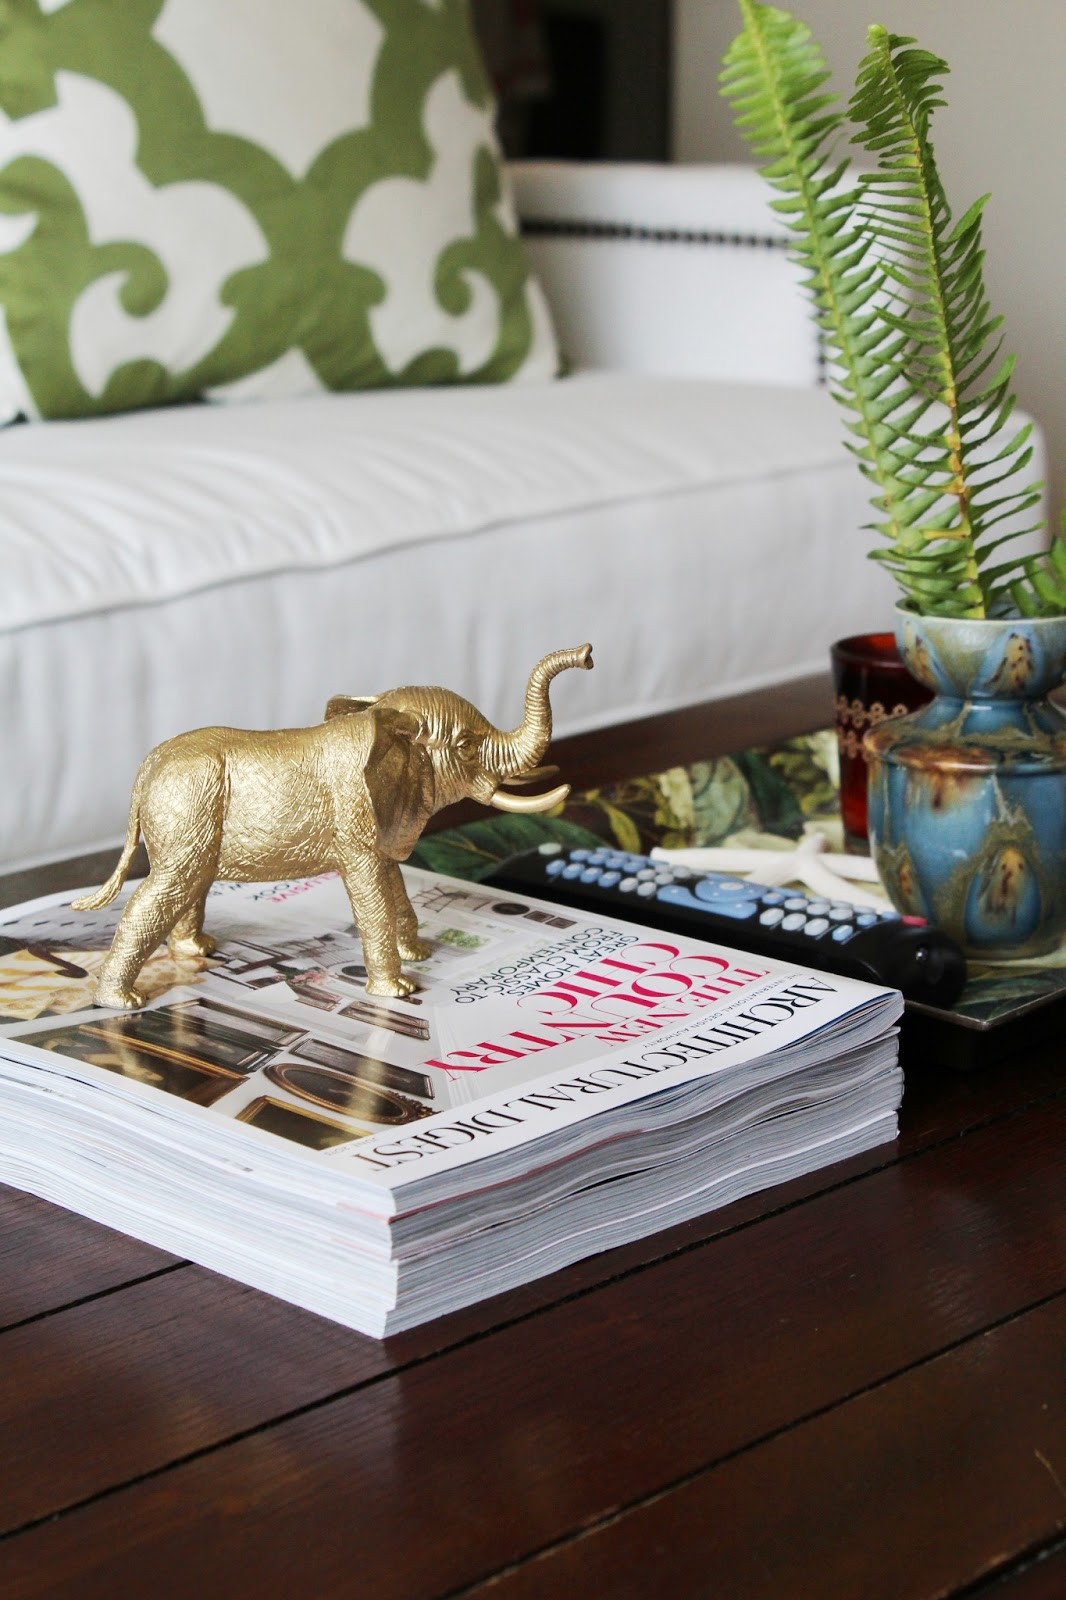 Turned To Design Re Styling What S On My Coffee Table